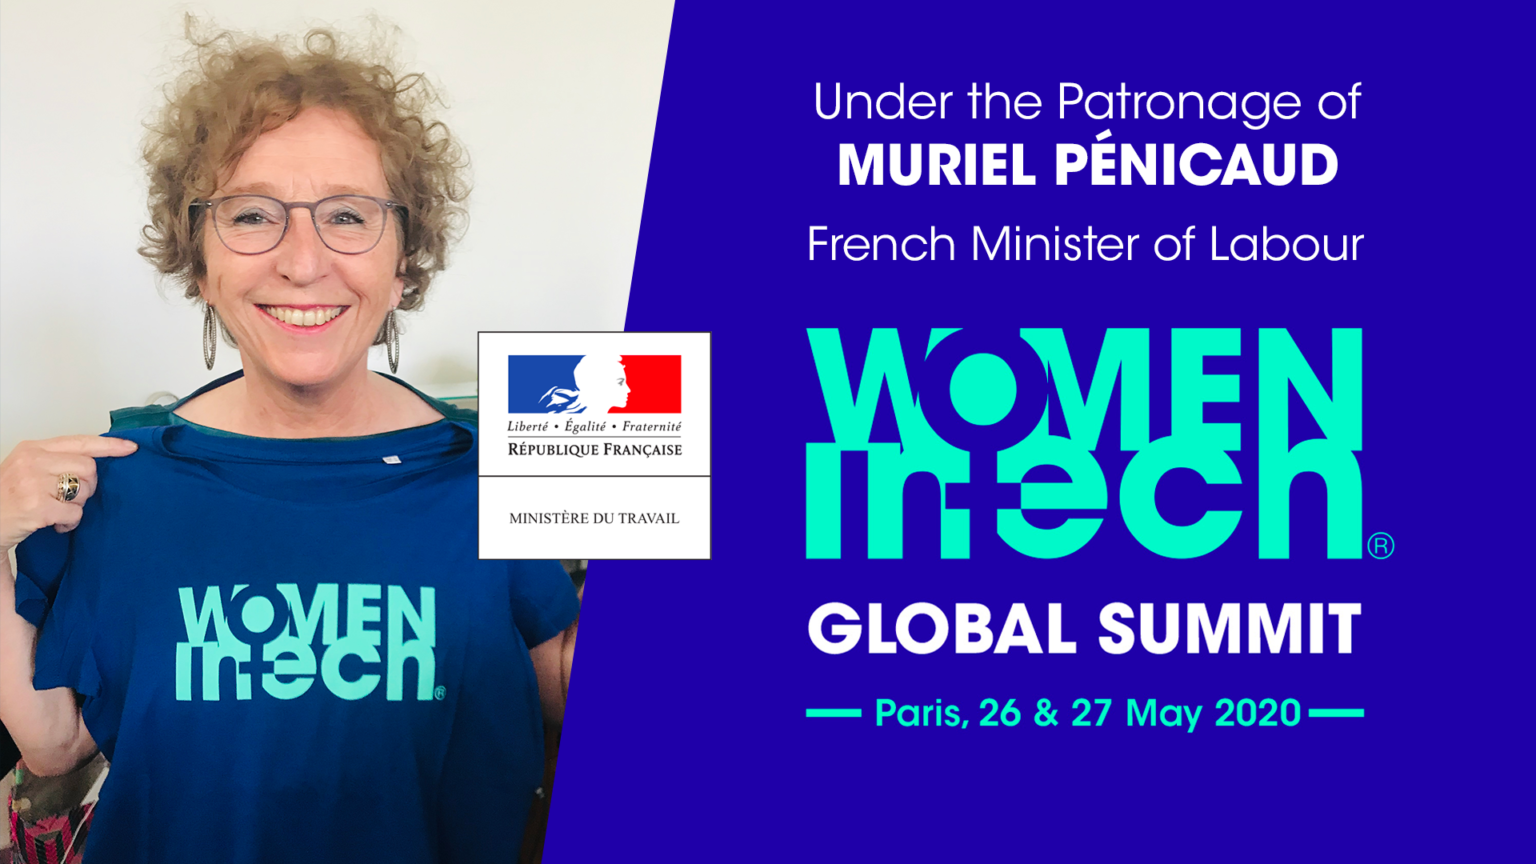 Marrainage by French Minister of Labour,Muriel Penicaud